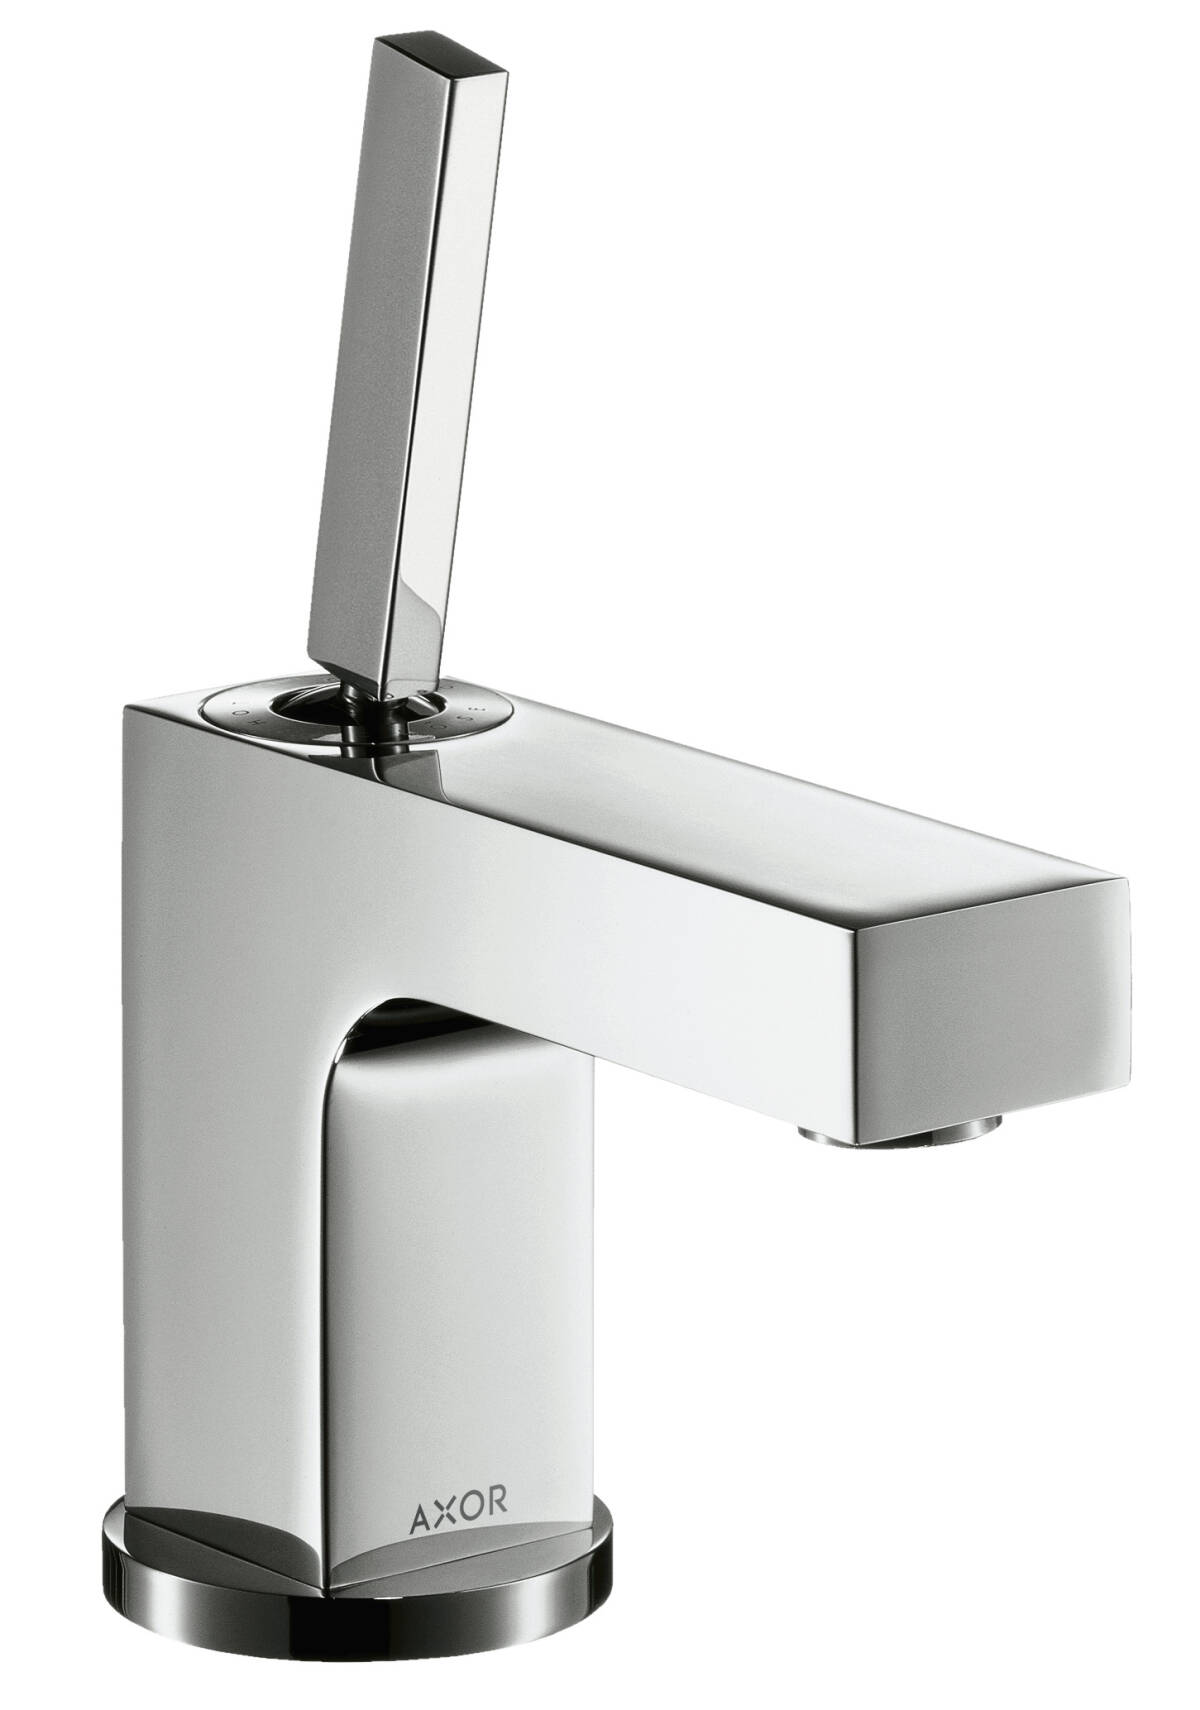 Single lever basin mixer 80 with pop-up waste set for hand wash basins, Brushed Black Chrome, 39015340